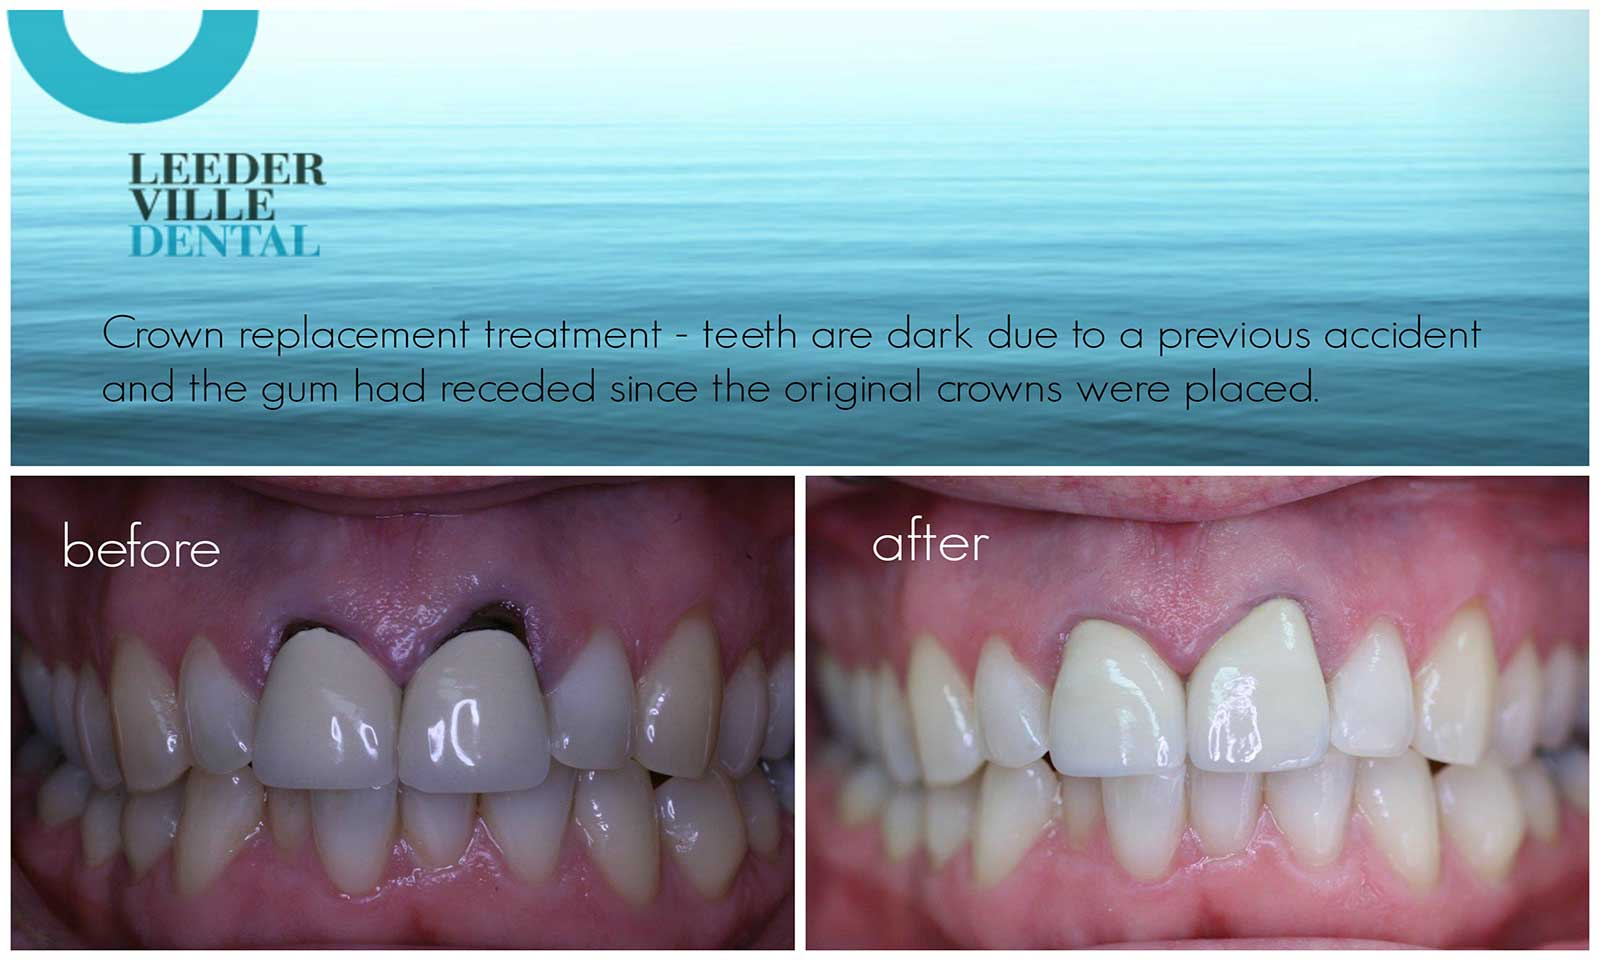 Before And After Photos From Leederville Dental